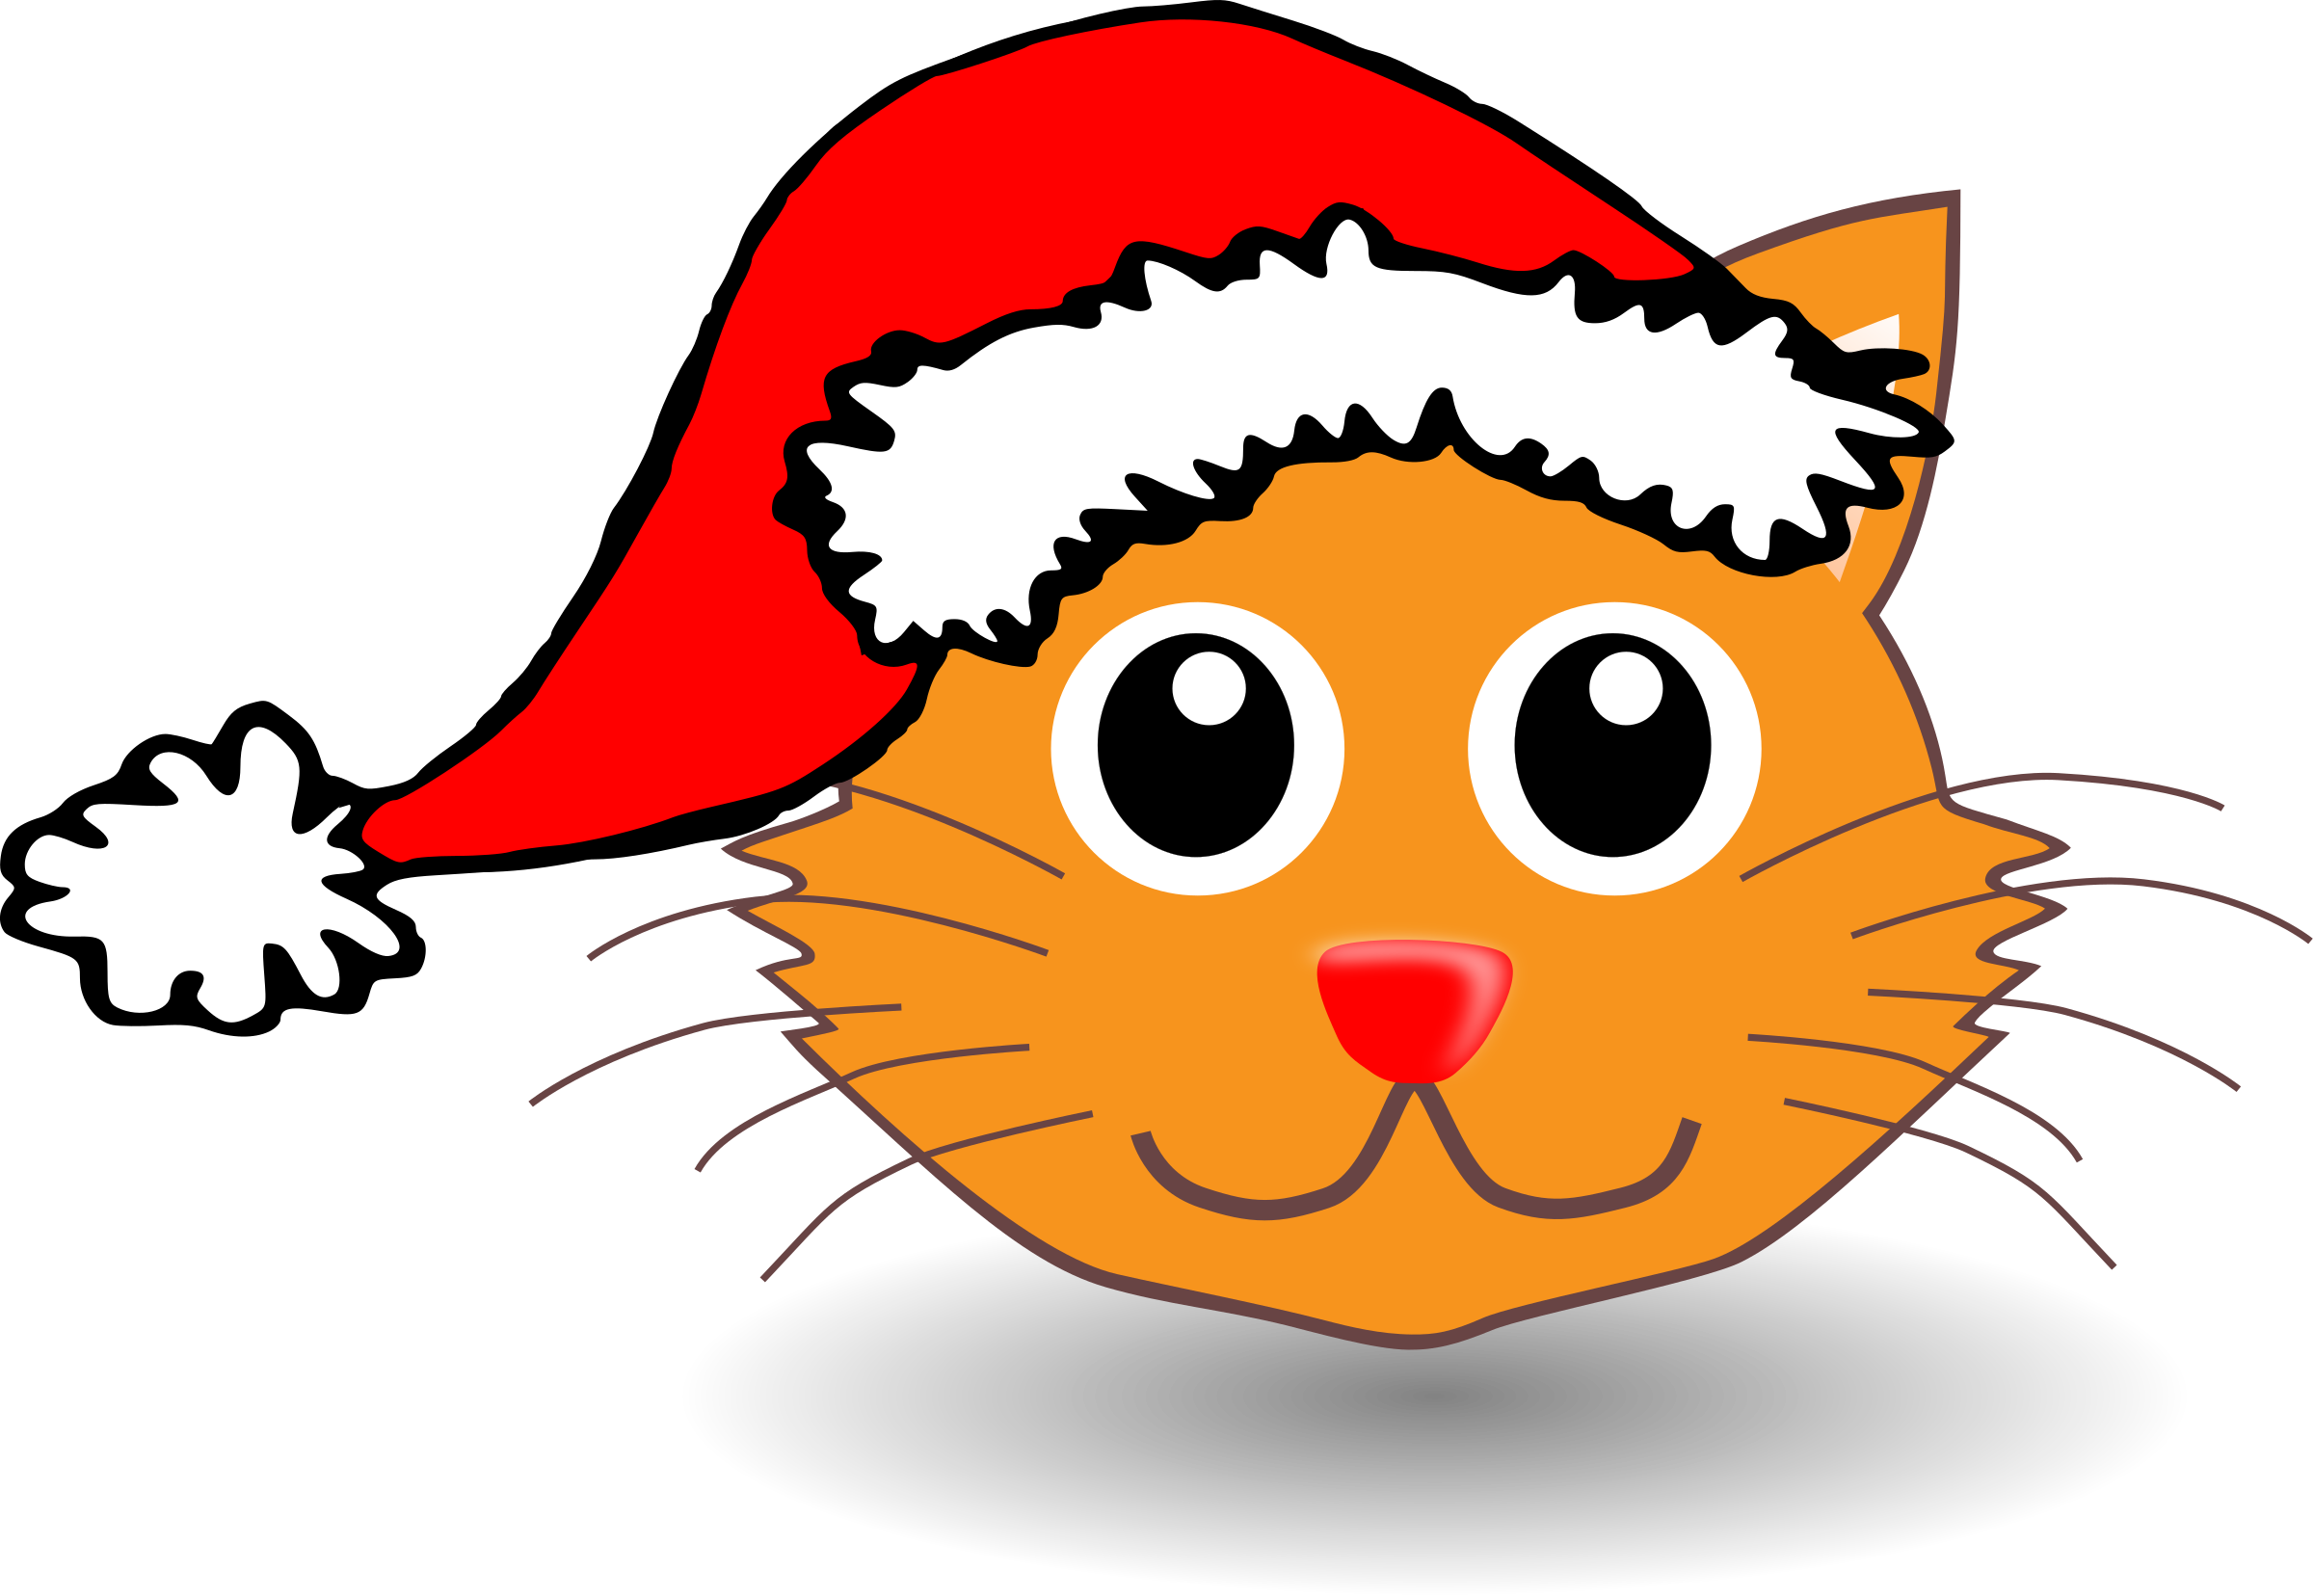 Orange cat face clipart graphic royalty free stock Clipart - Funny kitty face with Santa Claus hat graphic royalty free stock